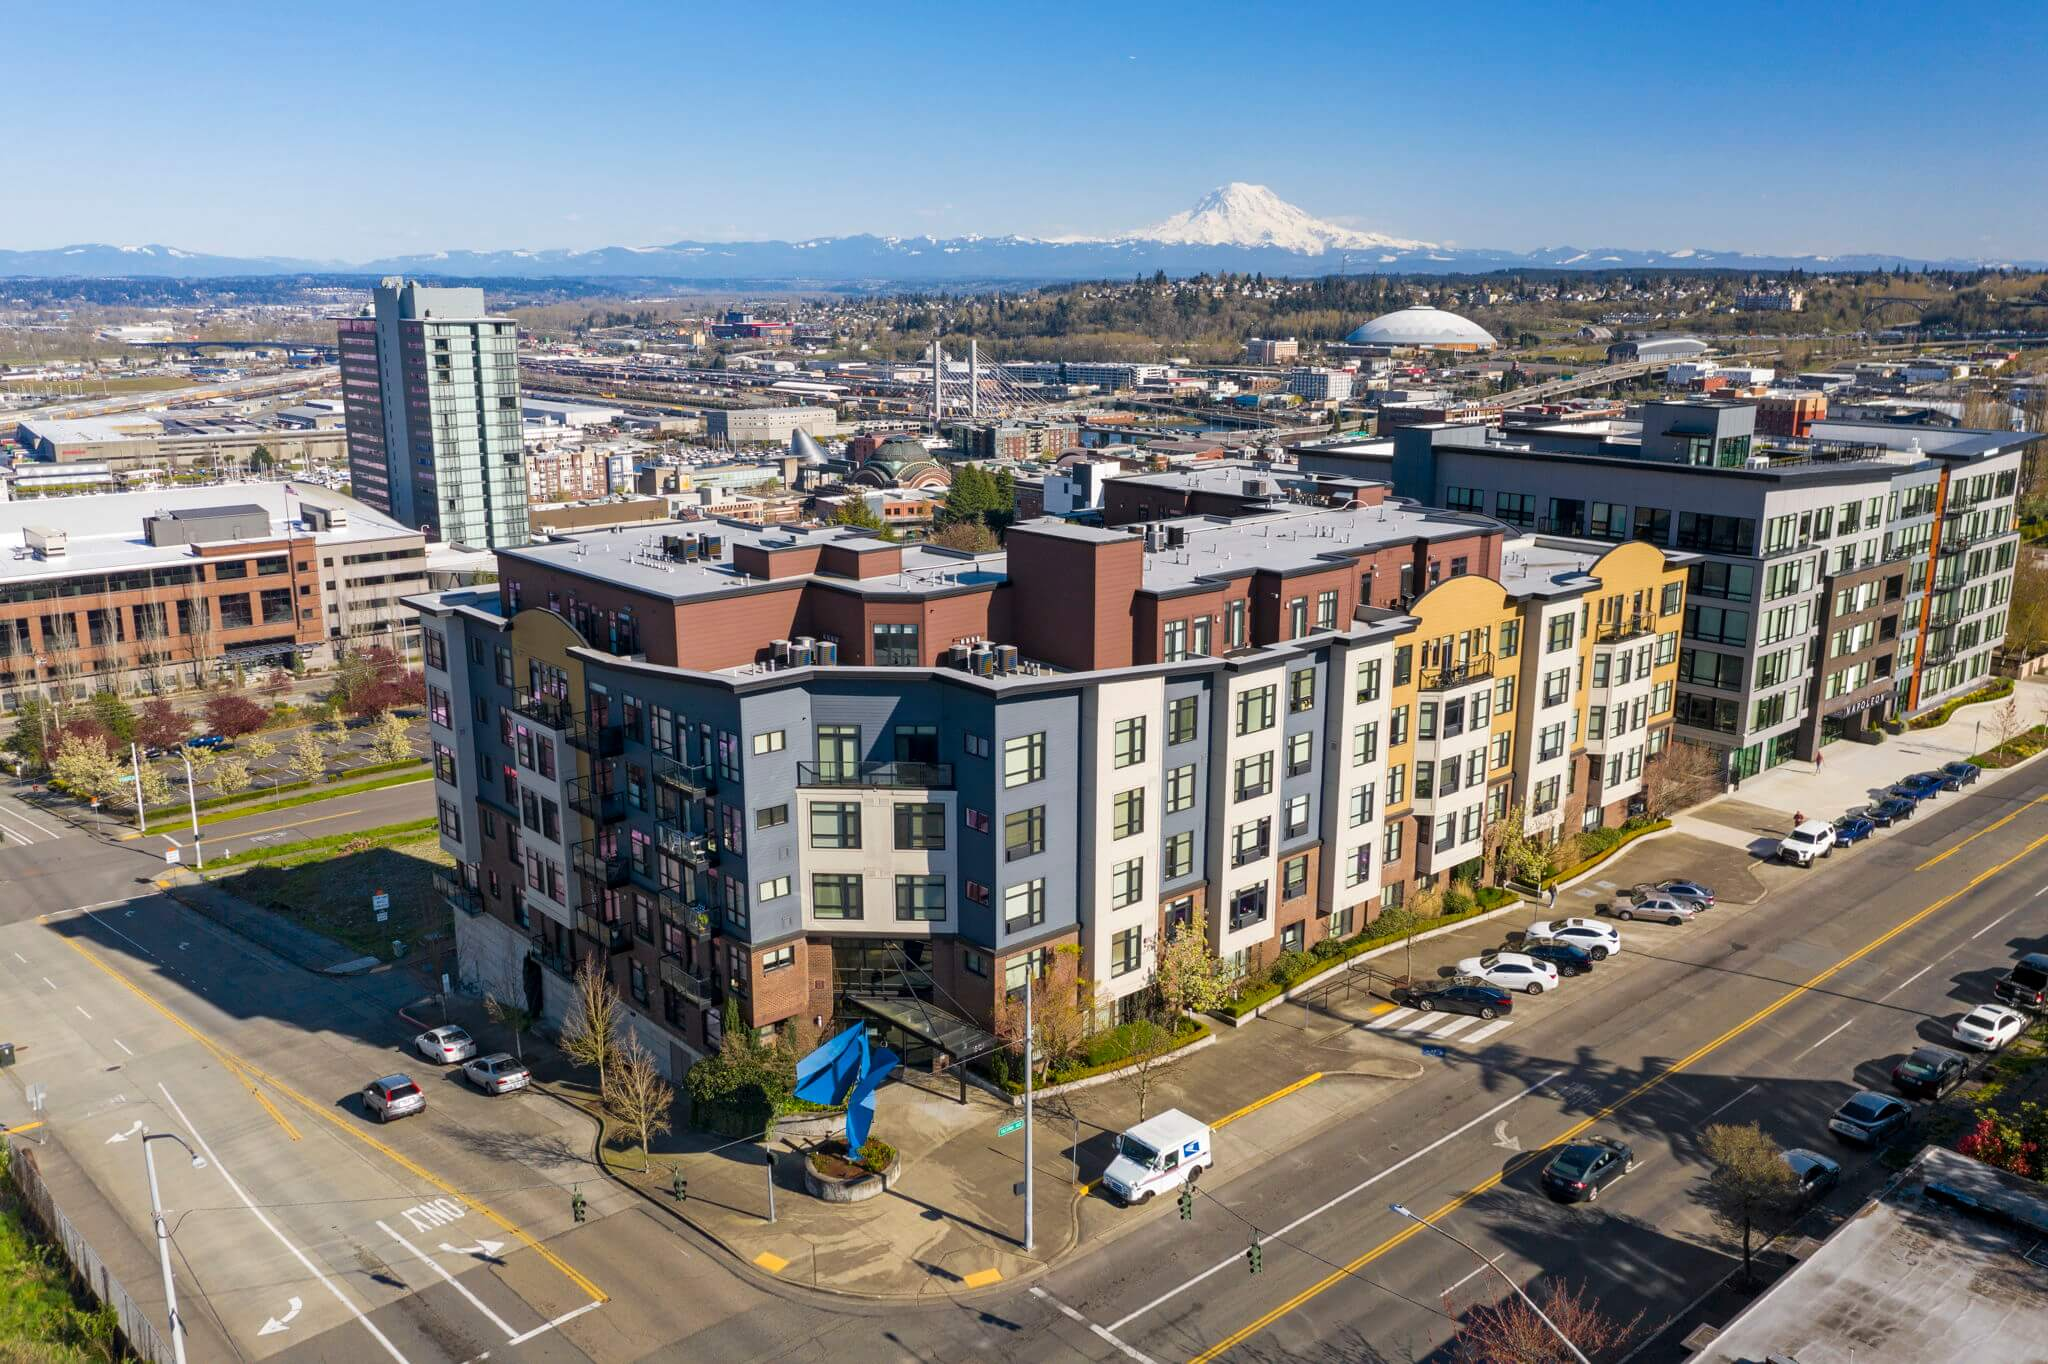 The Marcato provides easy access to the convention center and the University of Washington at Tacoma